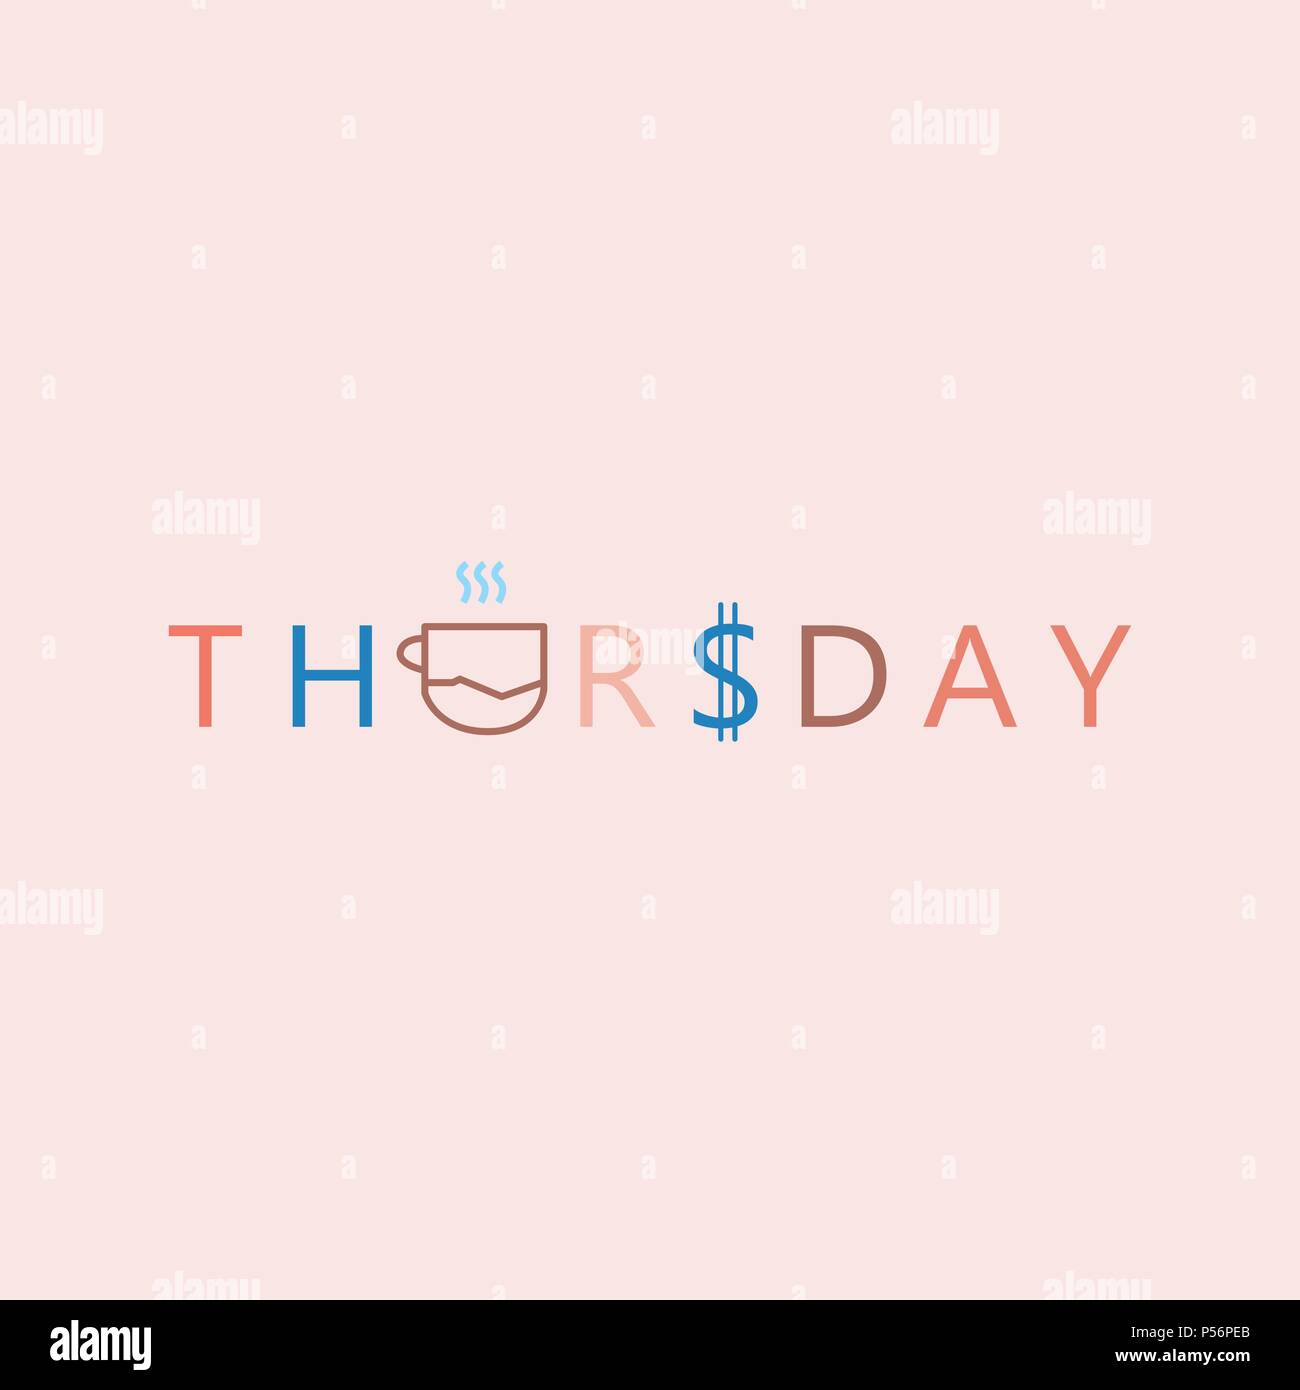 Thursday Beautiful lettering. Vector illustration of the text. Gentle pink background. - Stock Image